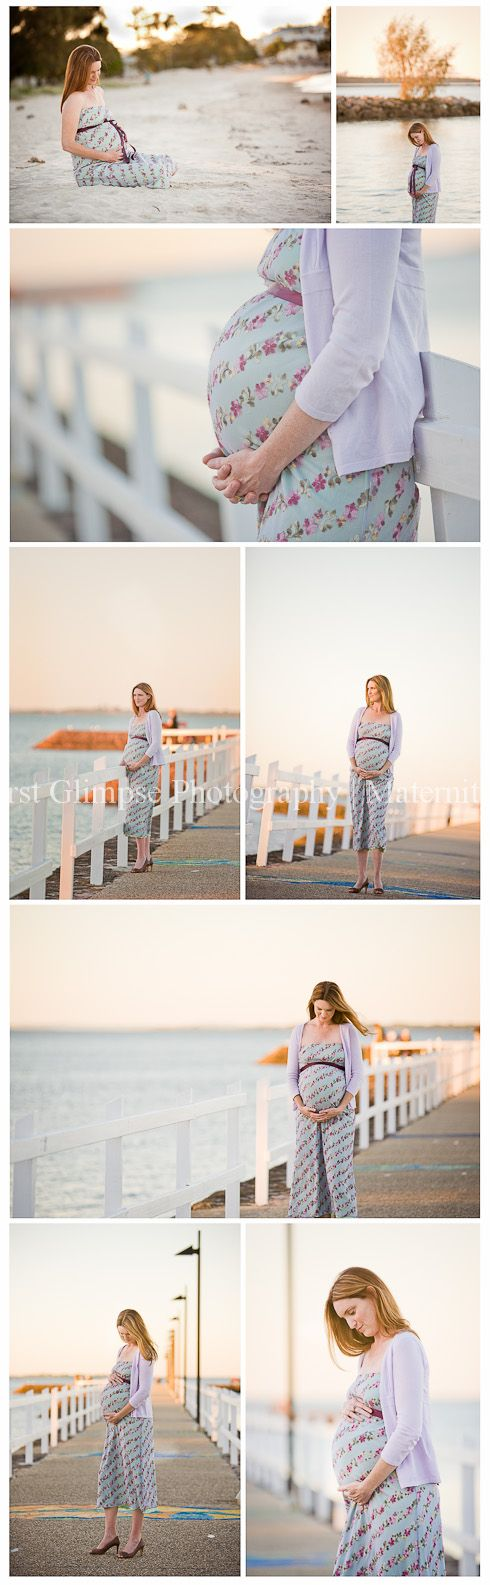 211 best Maternity photography Ideas images on Pinterest | Maternity ...